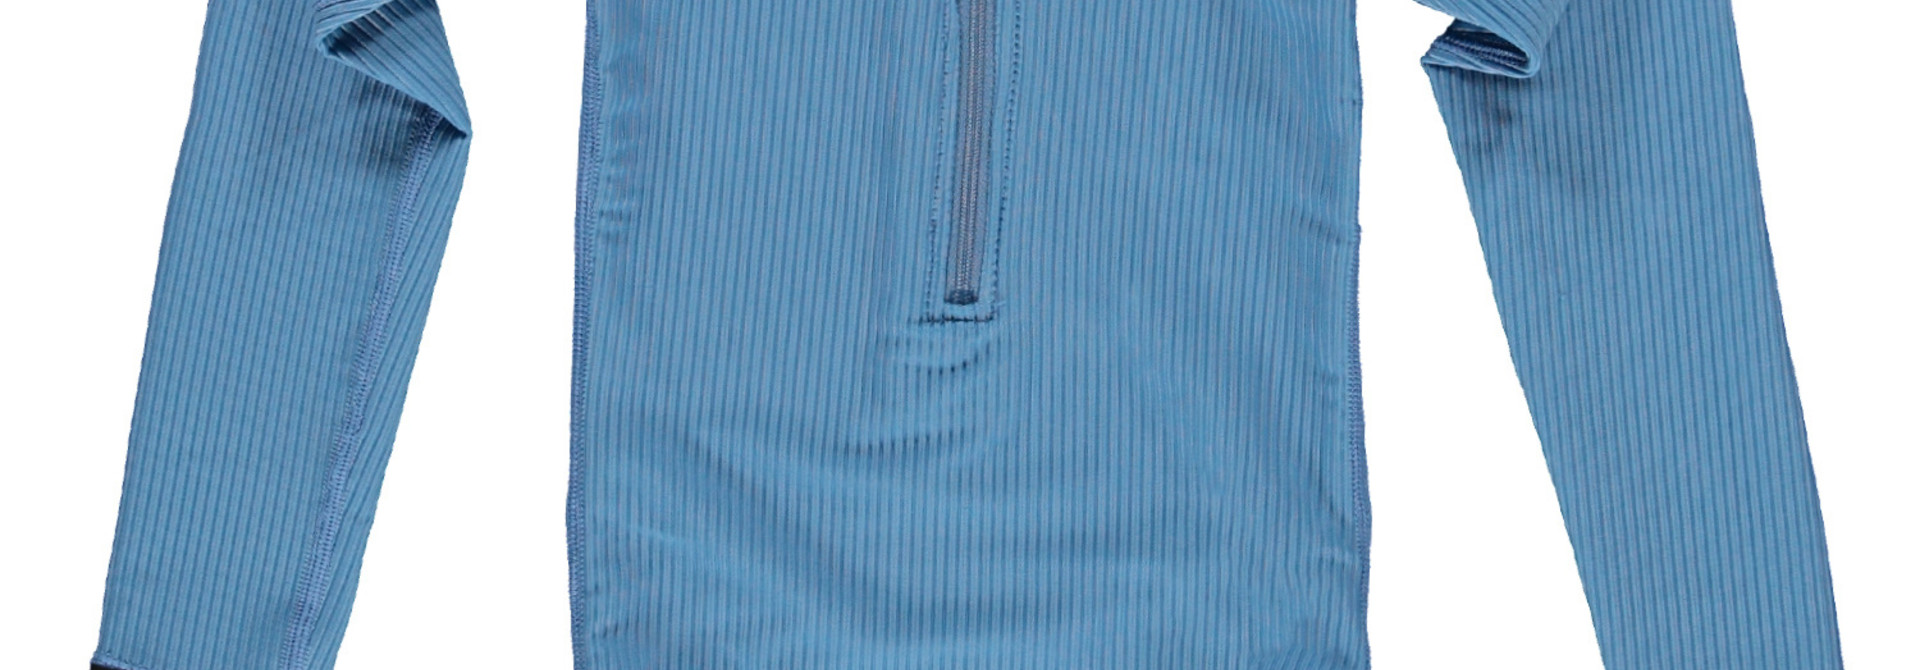 Reef Ribbed suit